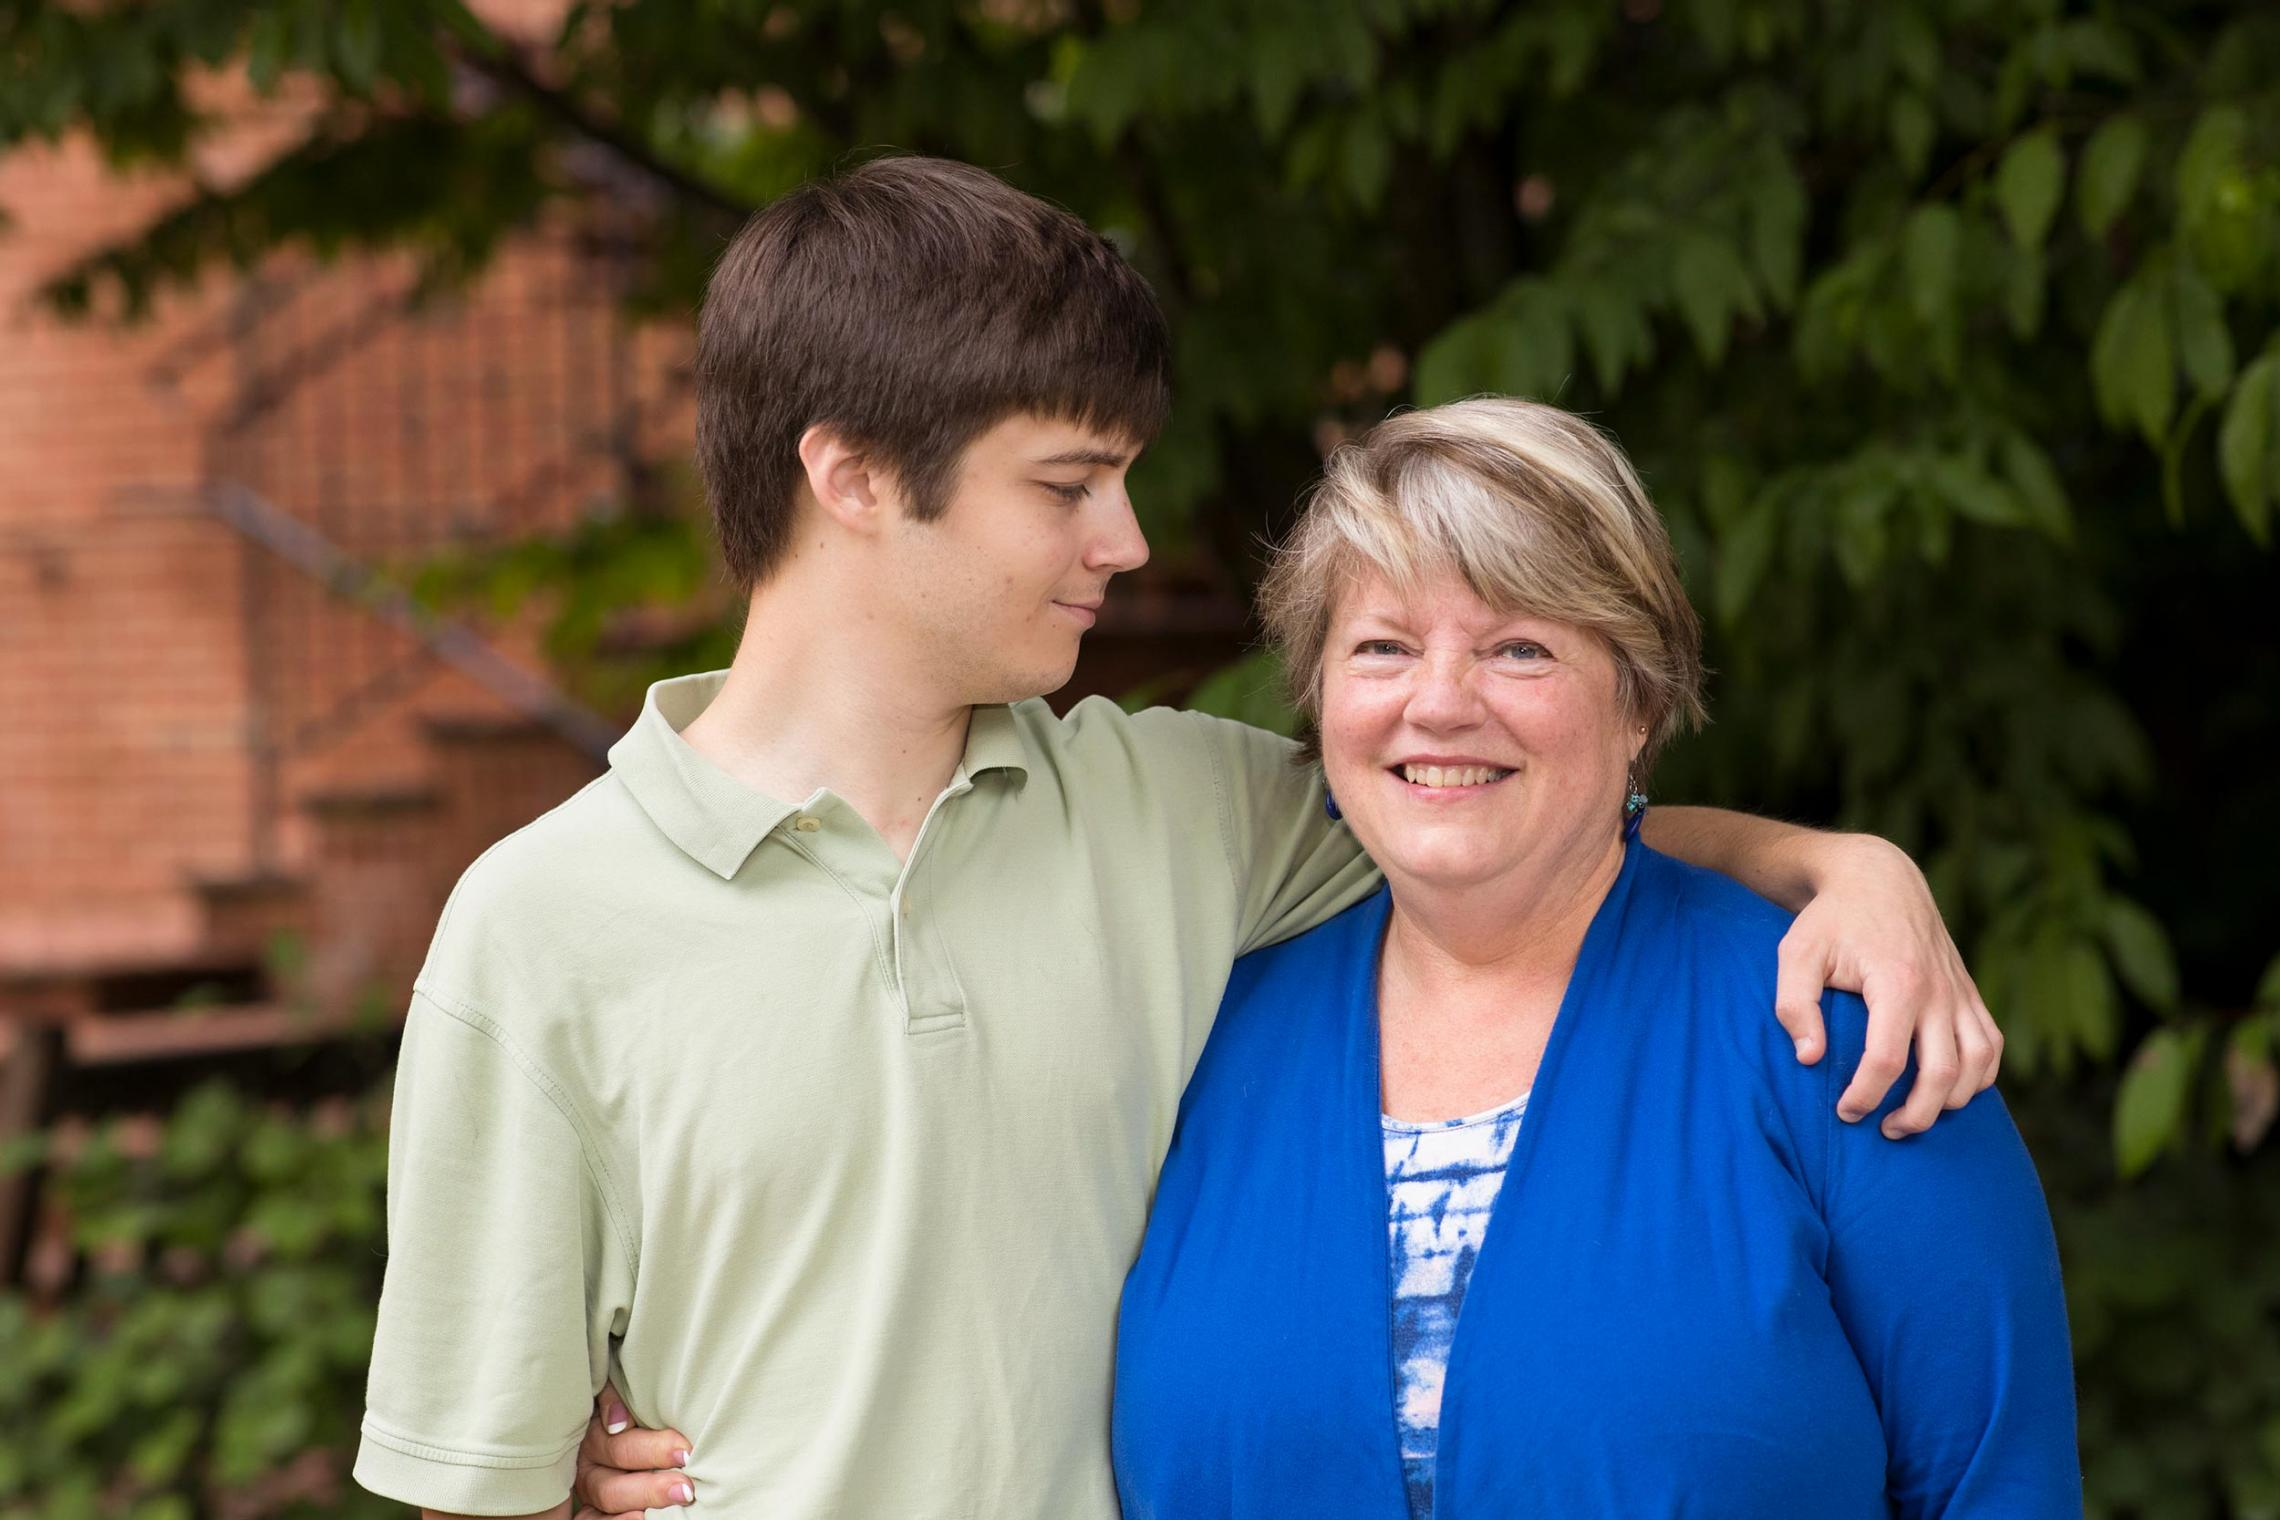 Fay Painter's son Adam, 22, was diagnosed with autism at age 3. Now, as a family resource navigator, Painter provides support and guidance to local families with a new diagnosis.